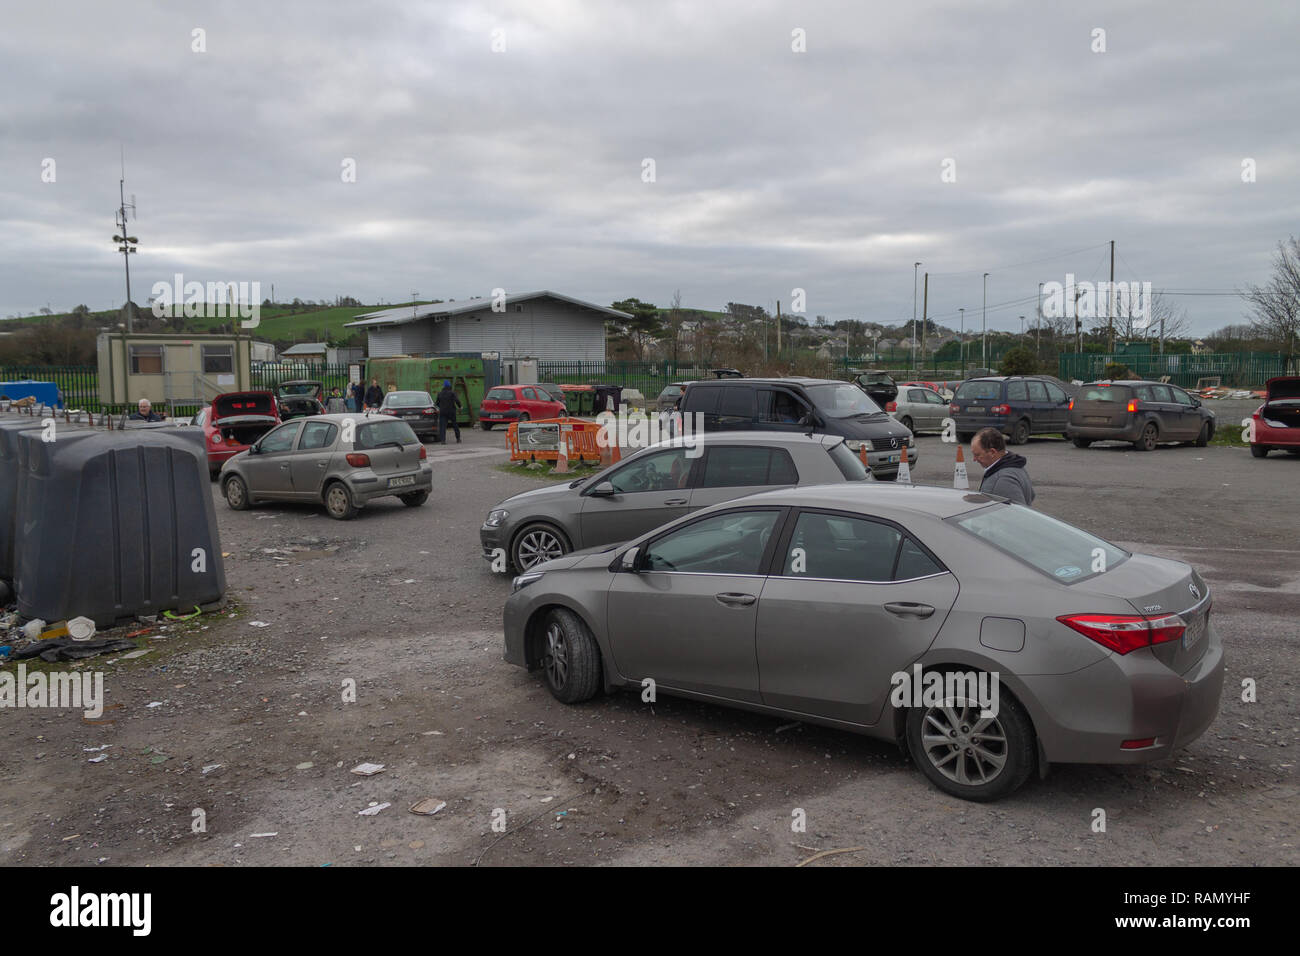 Skibbereen, West Cork, Ireland, January 04th 2018. Large crowds were filling the recycle yard in Skibbereen today, most of it was Christmas packaging being emptied out of the houses. Credit: aphperspective/Alamy Live News - Stock Image